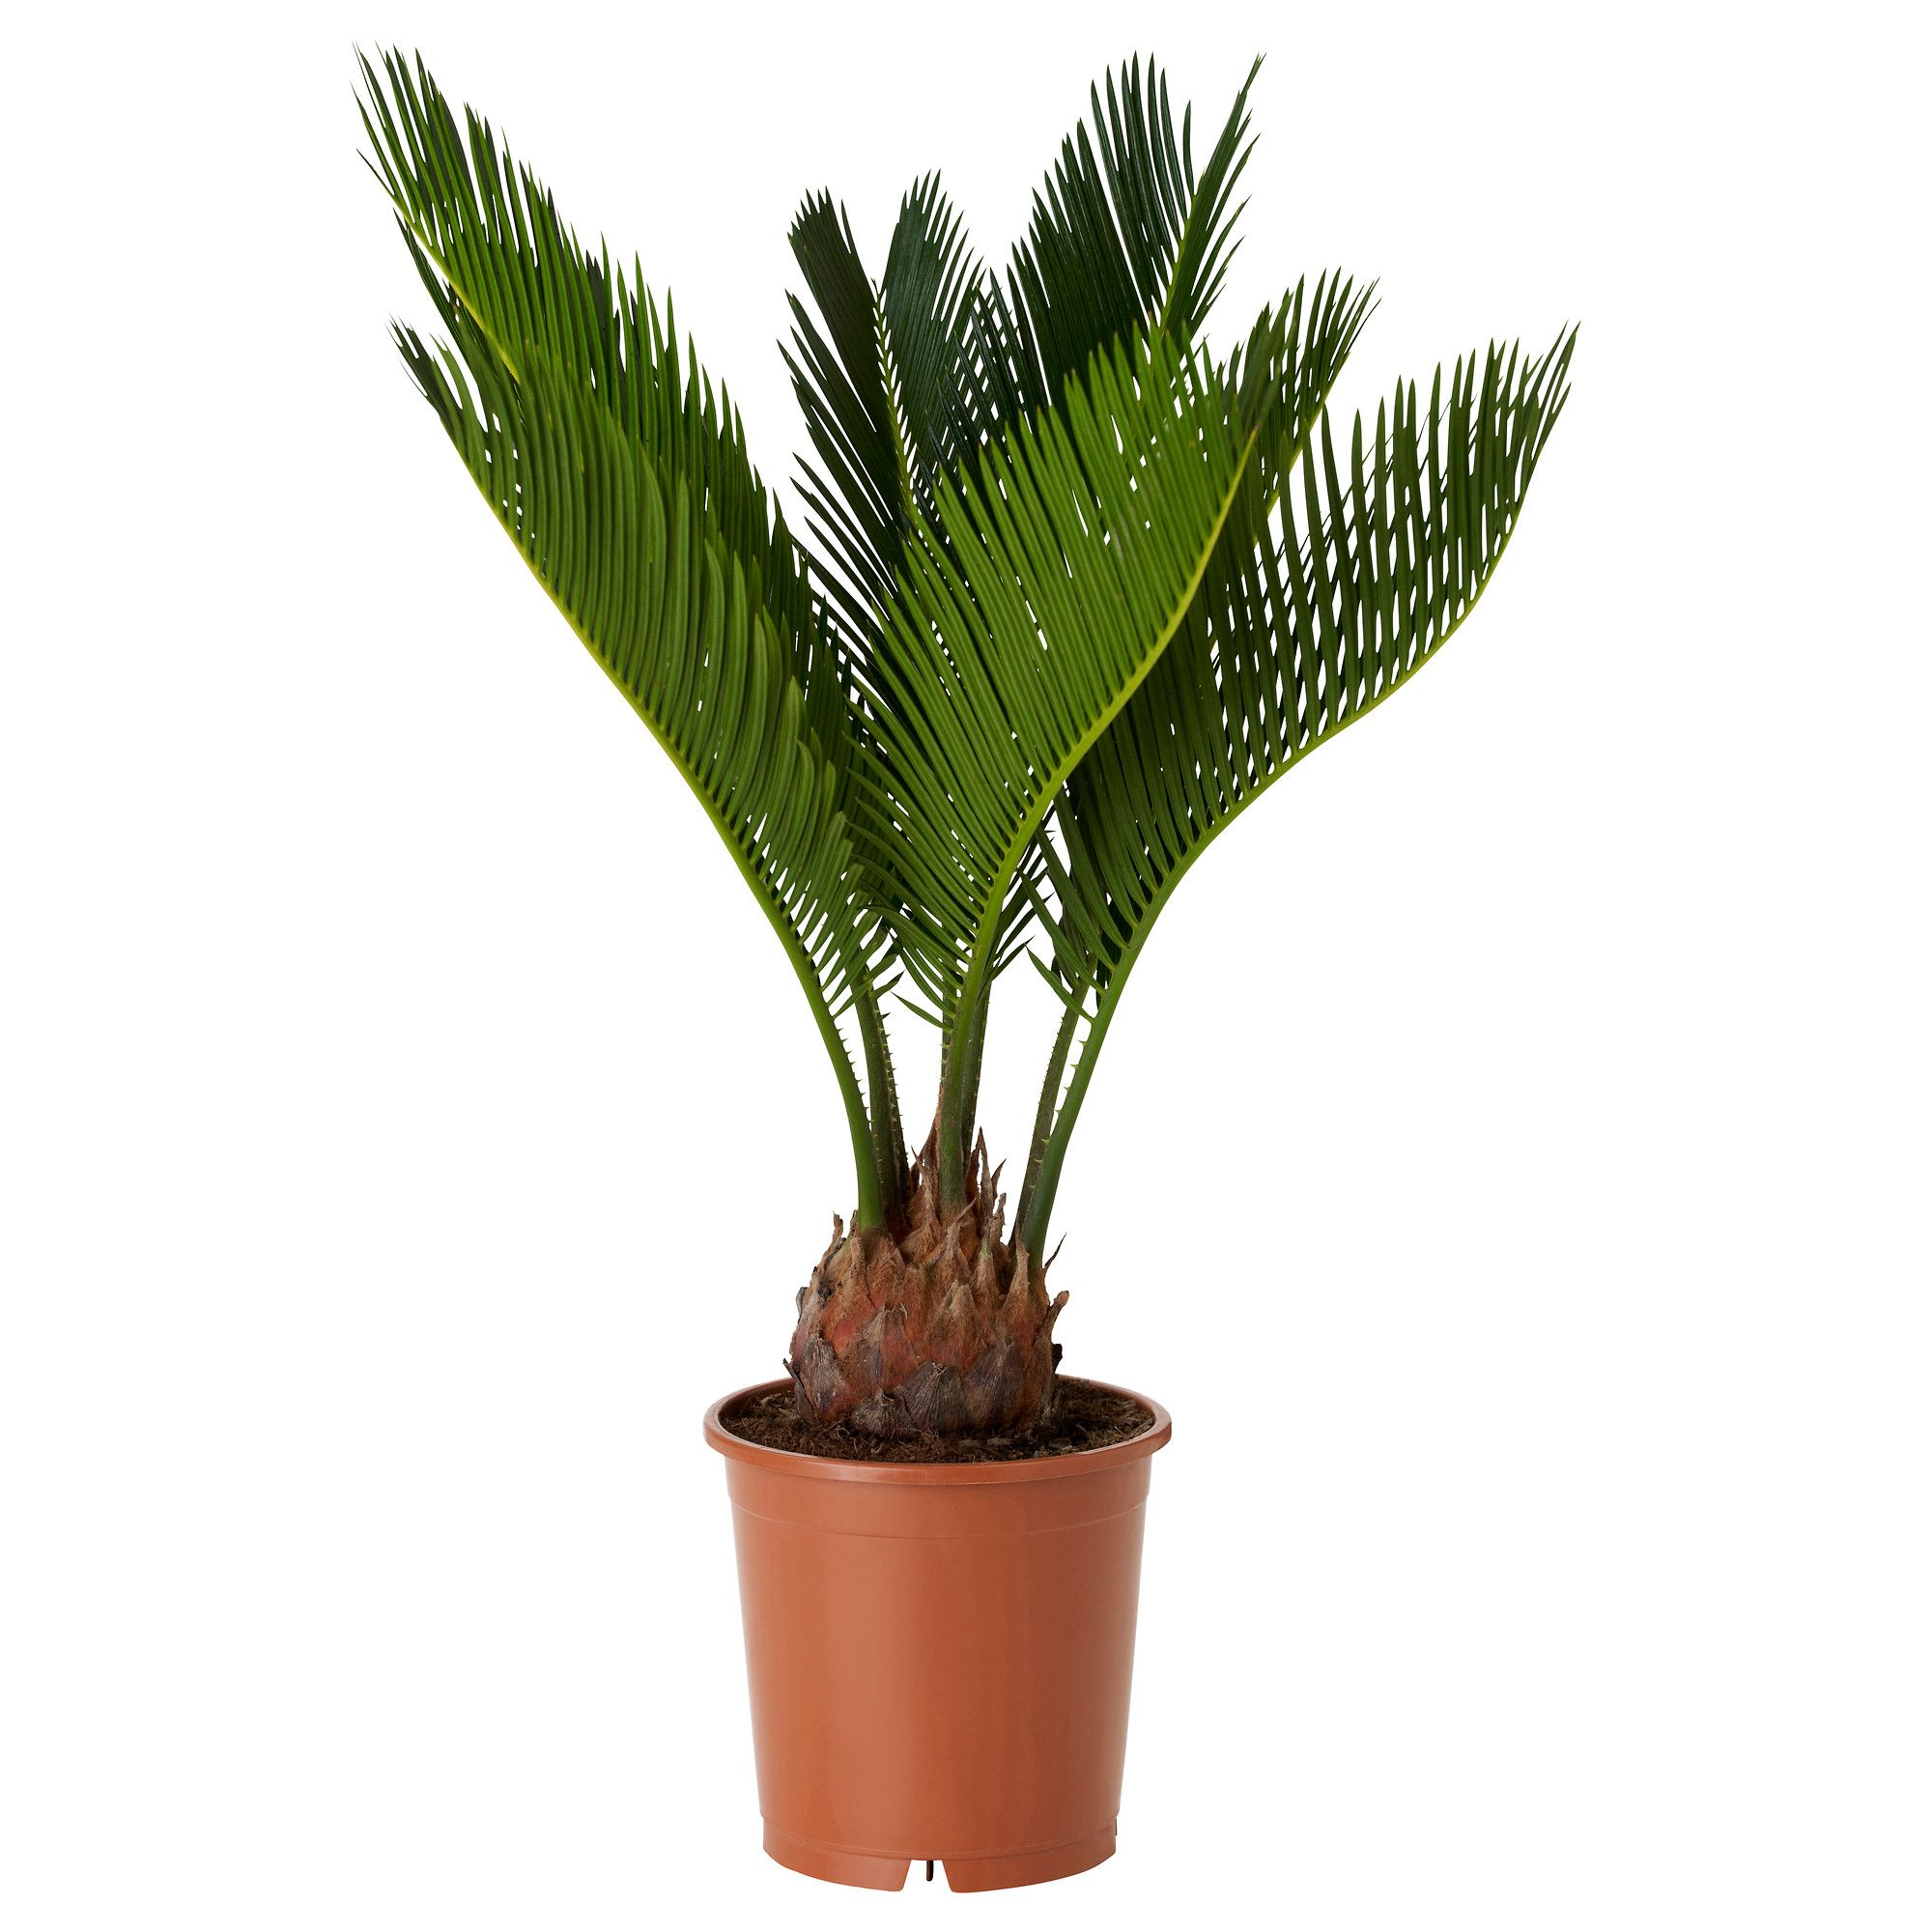 cycas revoluta potted plant ikea cycas palm pinterest pflanzen ikea und orchideen. Black Bedroom Furniture Sets. Home Design Ideas